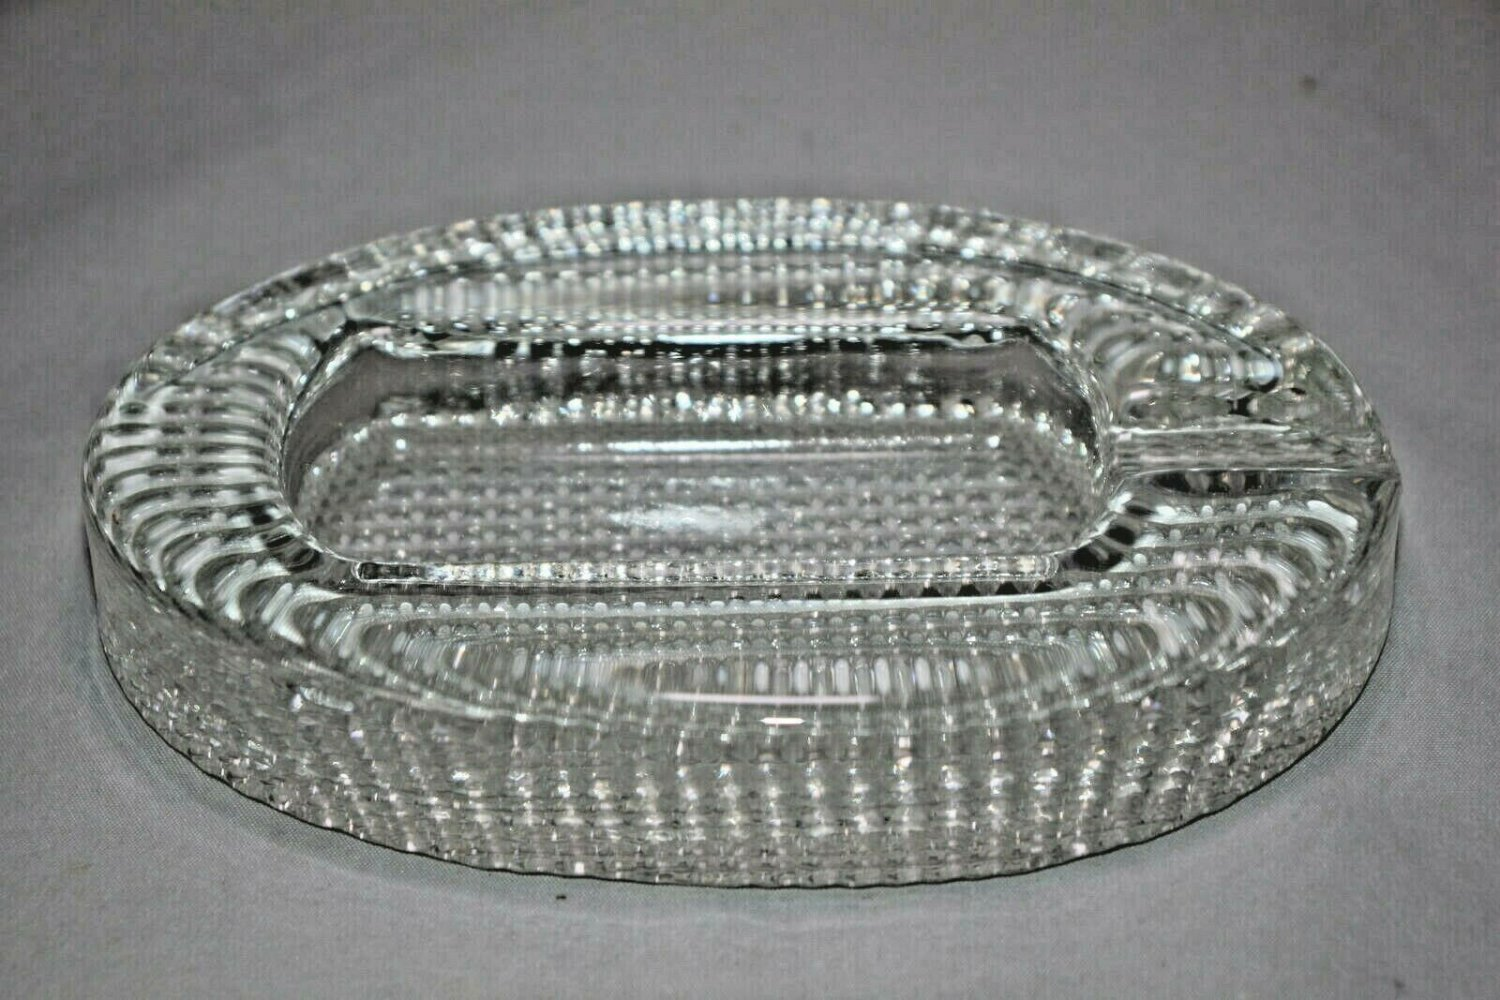 Comoy's of London Clear Crystal Heavy Glass Ashtray made in Italy